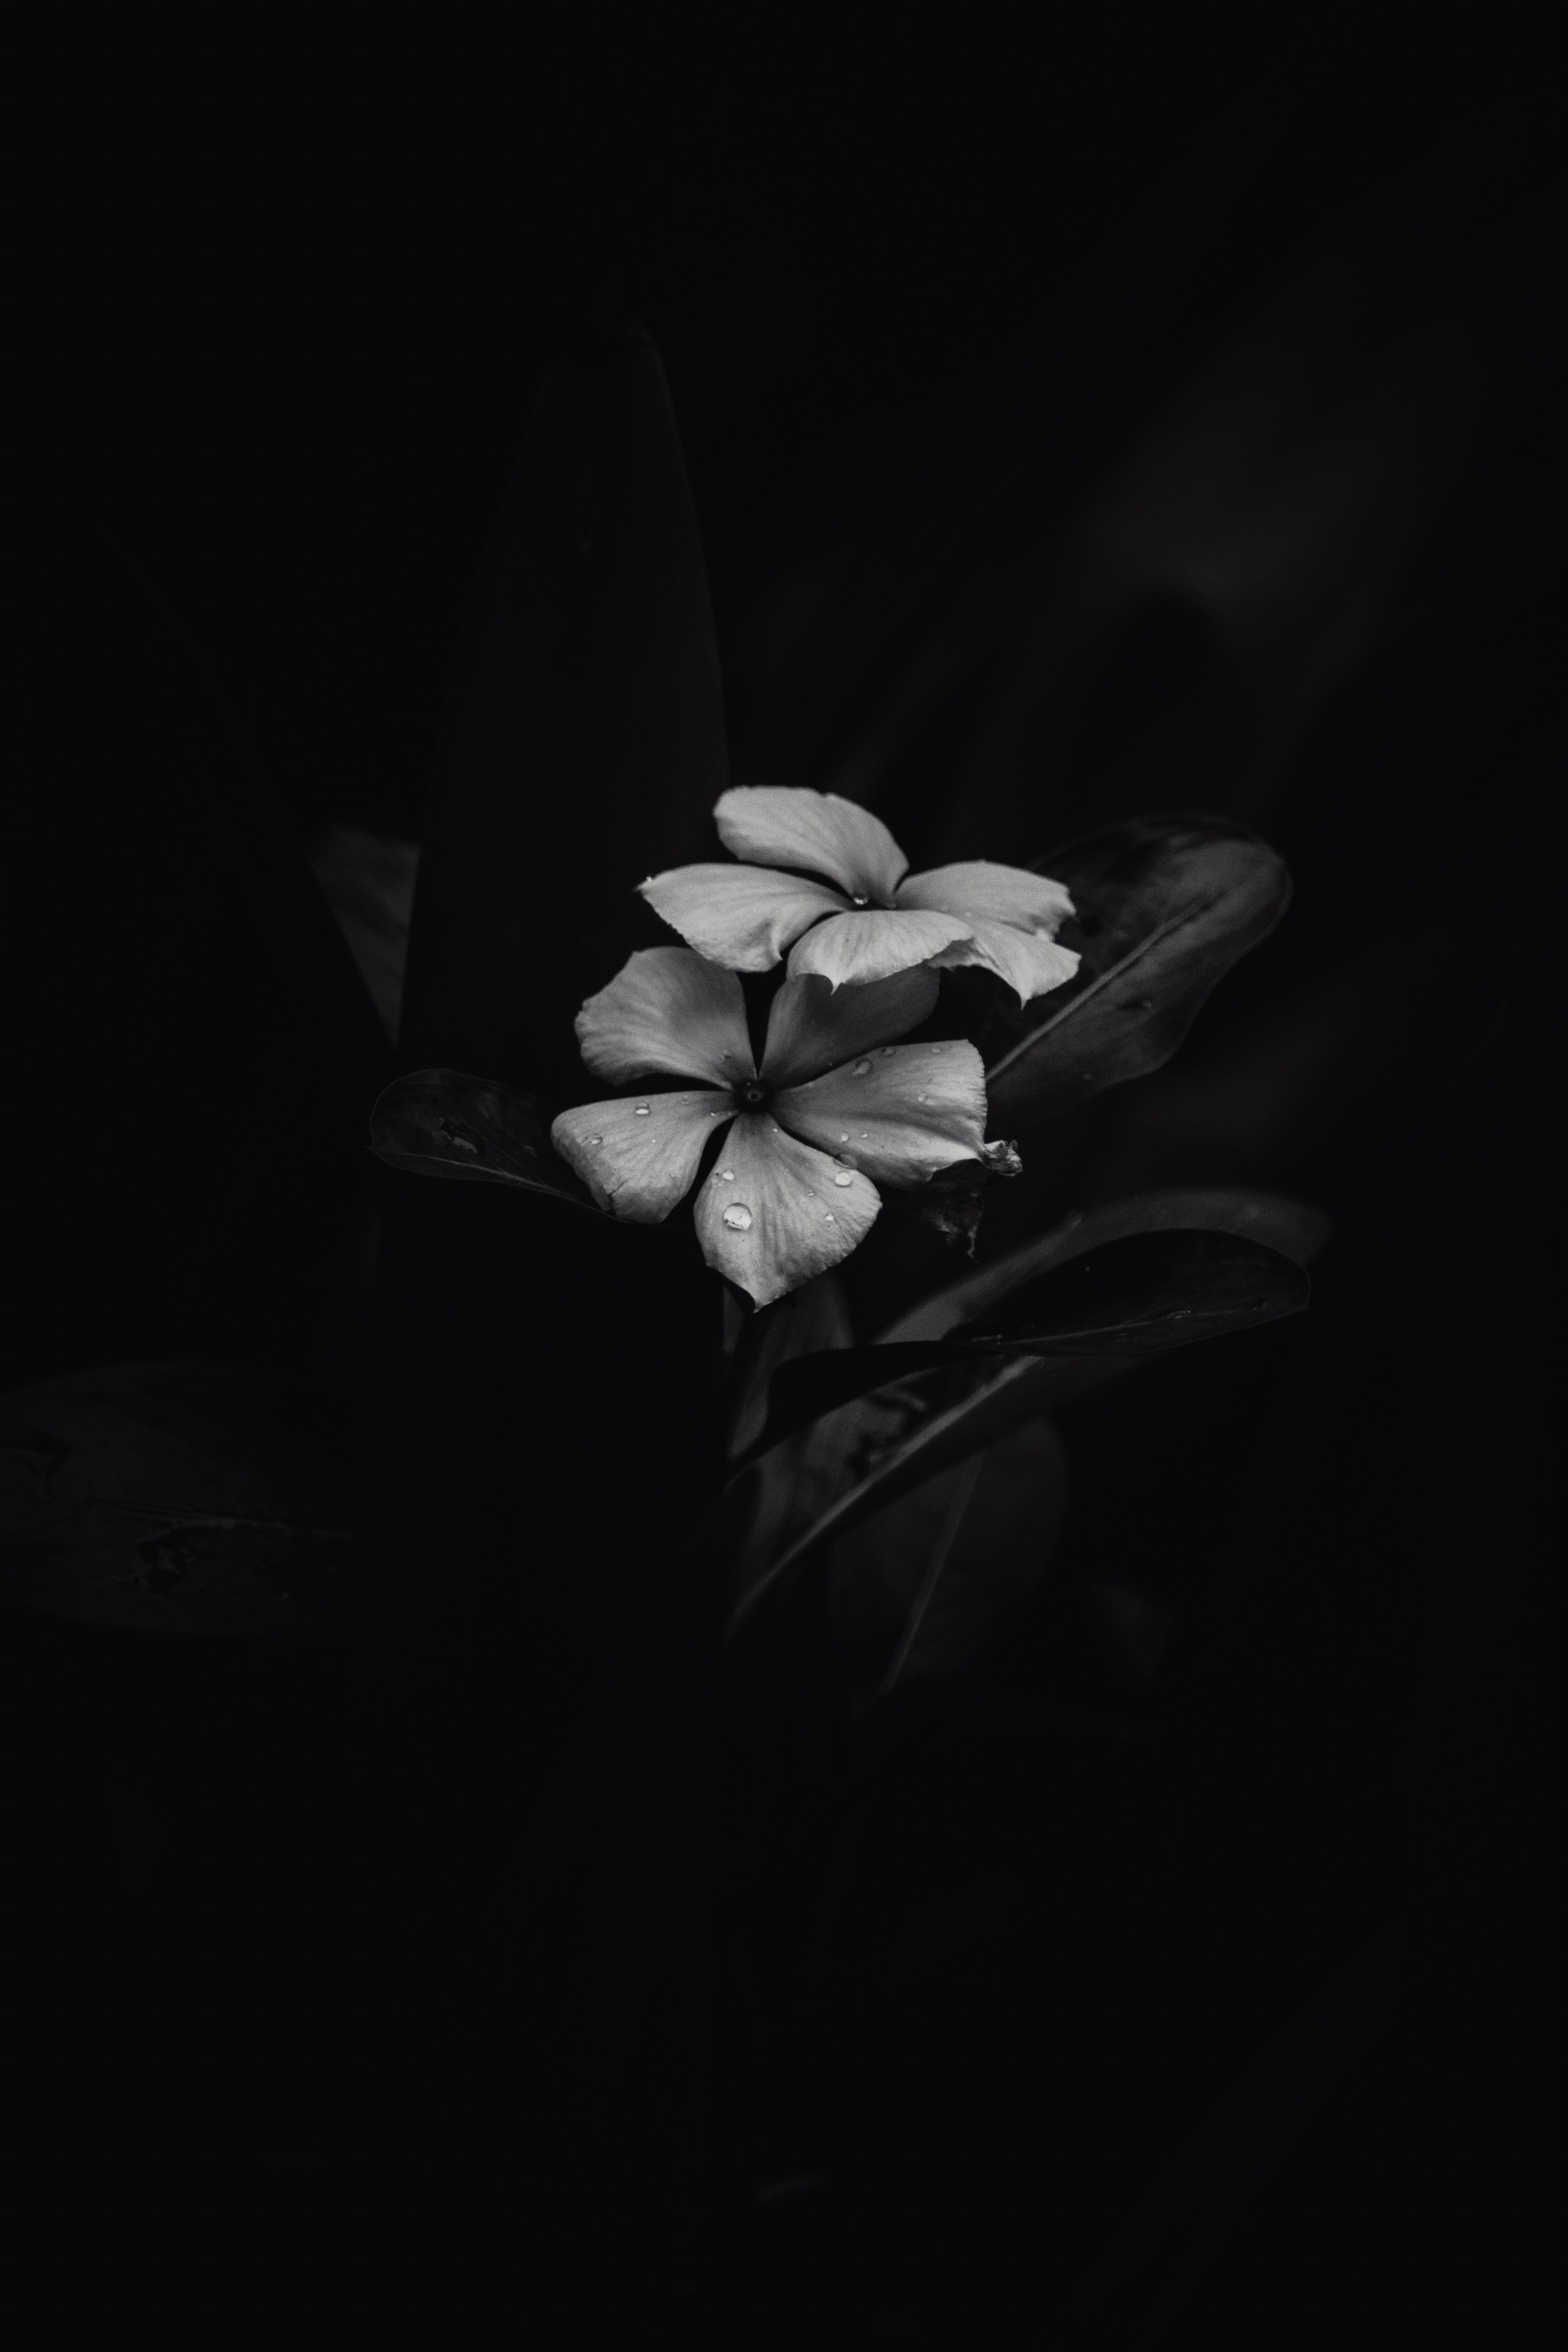 Grayscale Photo Of Flower With Black Background Free Stock Photo